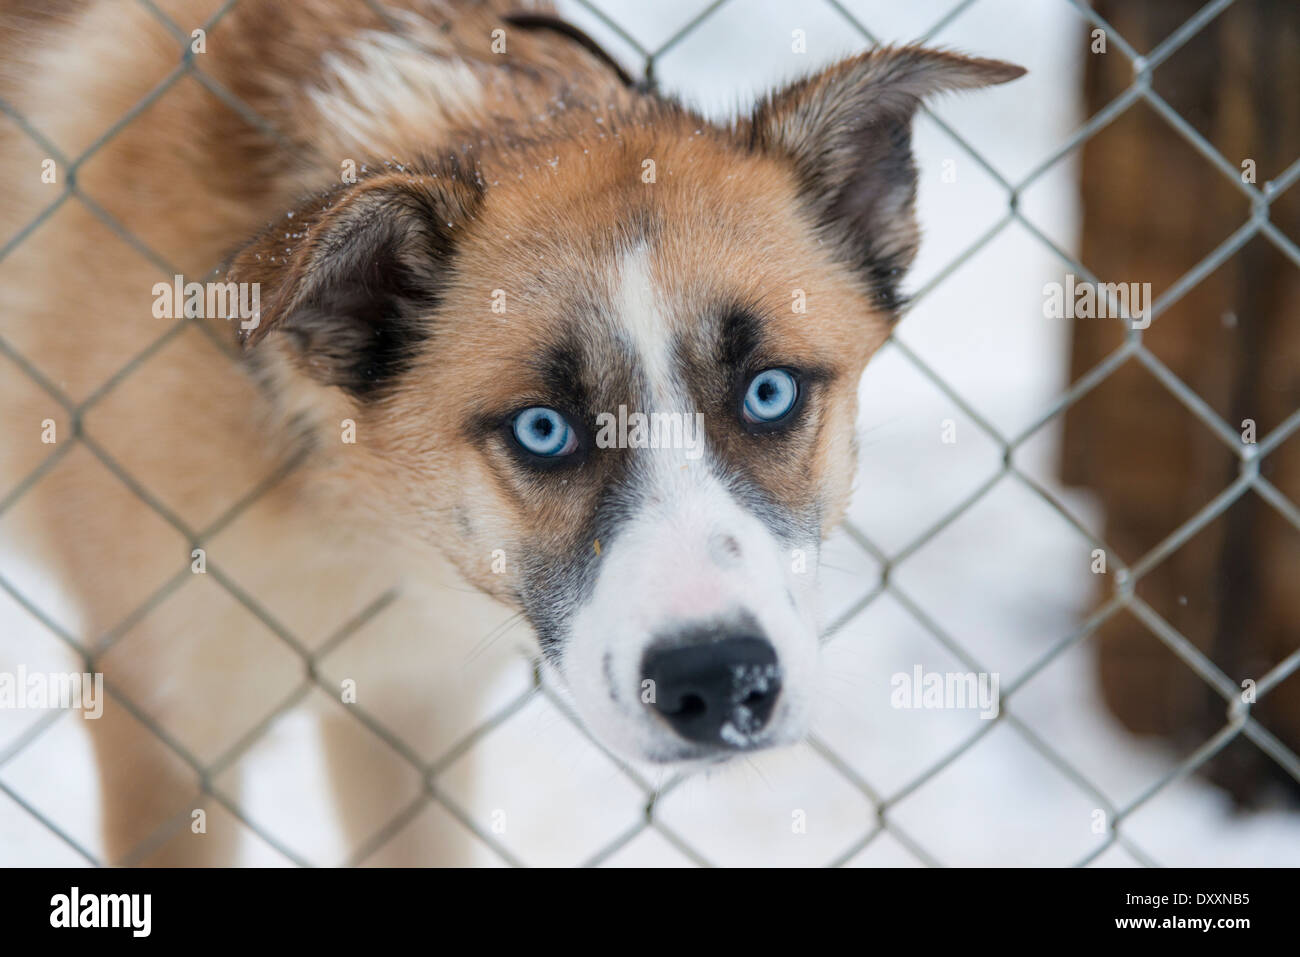 A husky dog with blue eyes poking its head through a wire kennel looking at the camera in a cute way, in Lapland Stock Photo